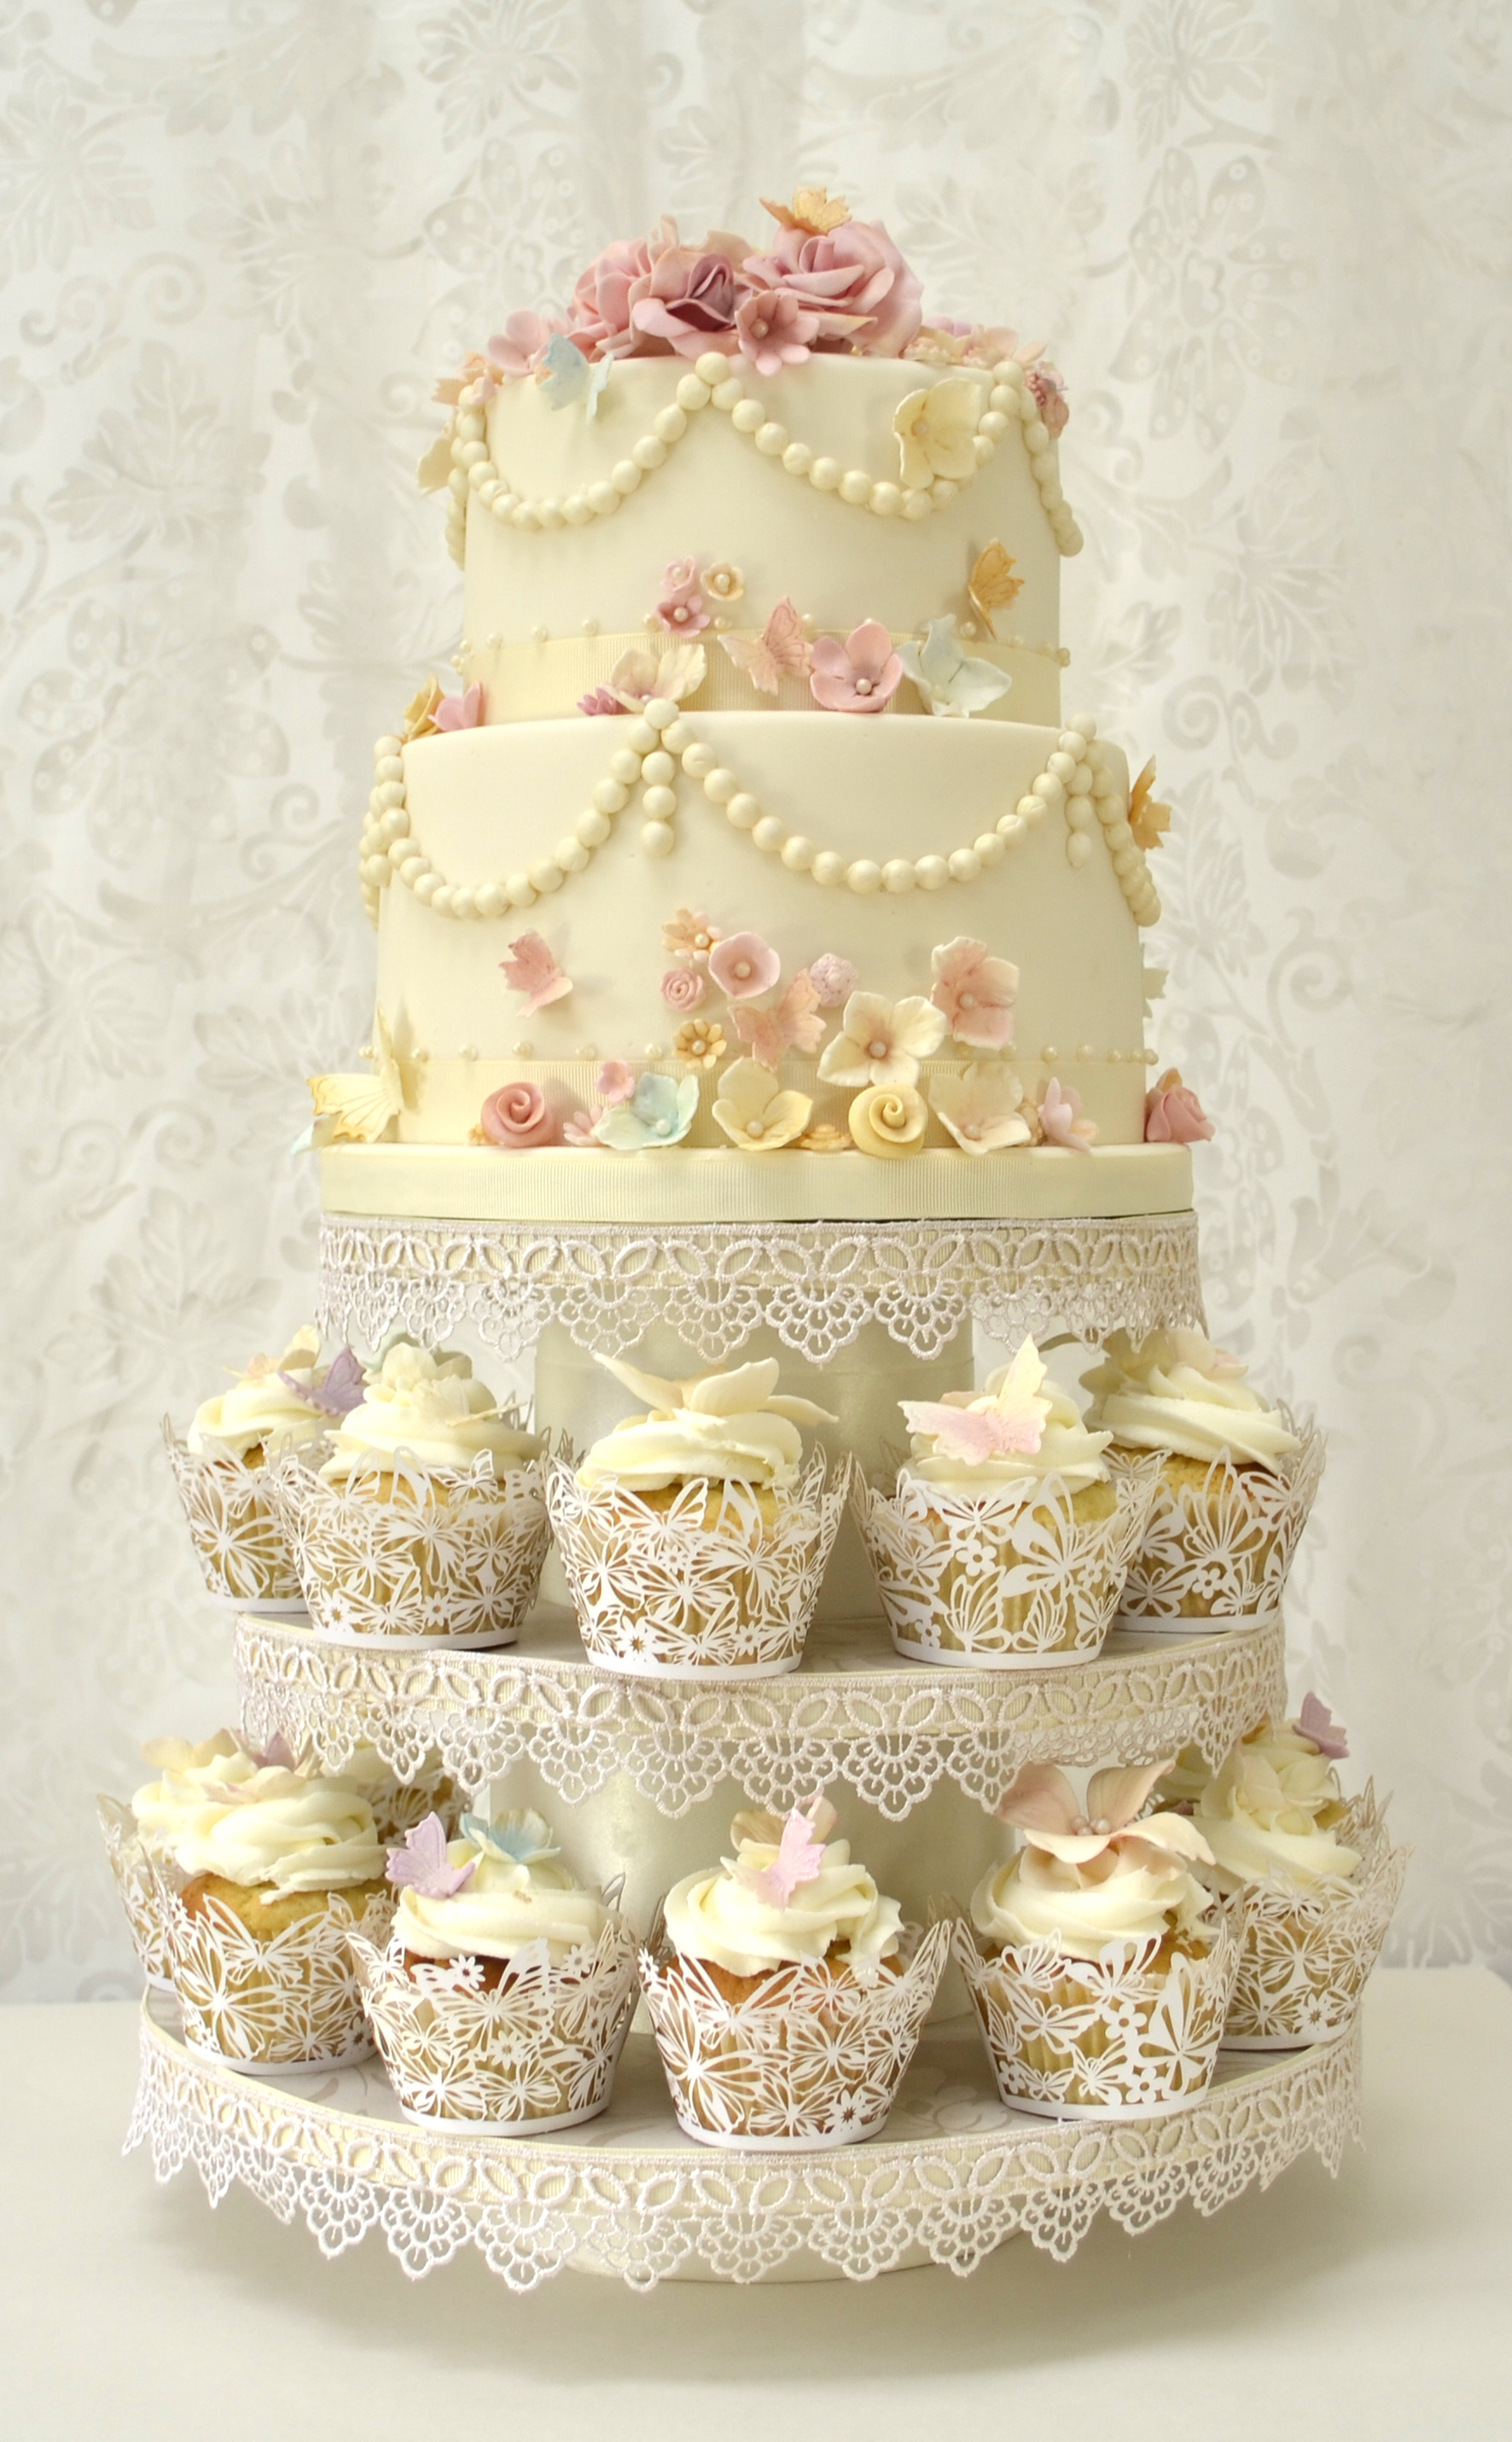 10 Top 2 Tier Wedding Cake With Cupcakes Photo - Two Tier Cake with ...